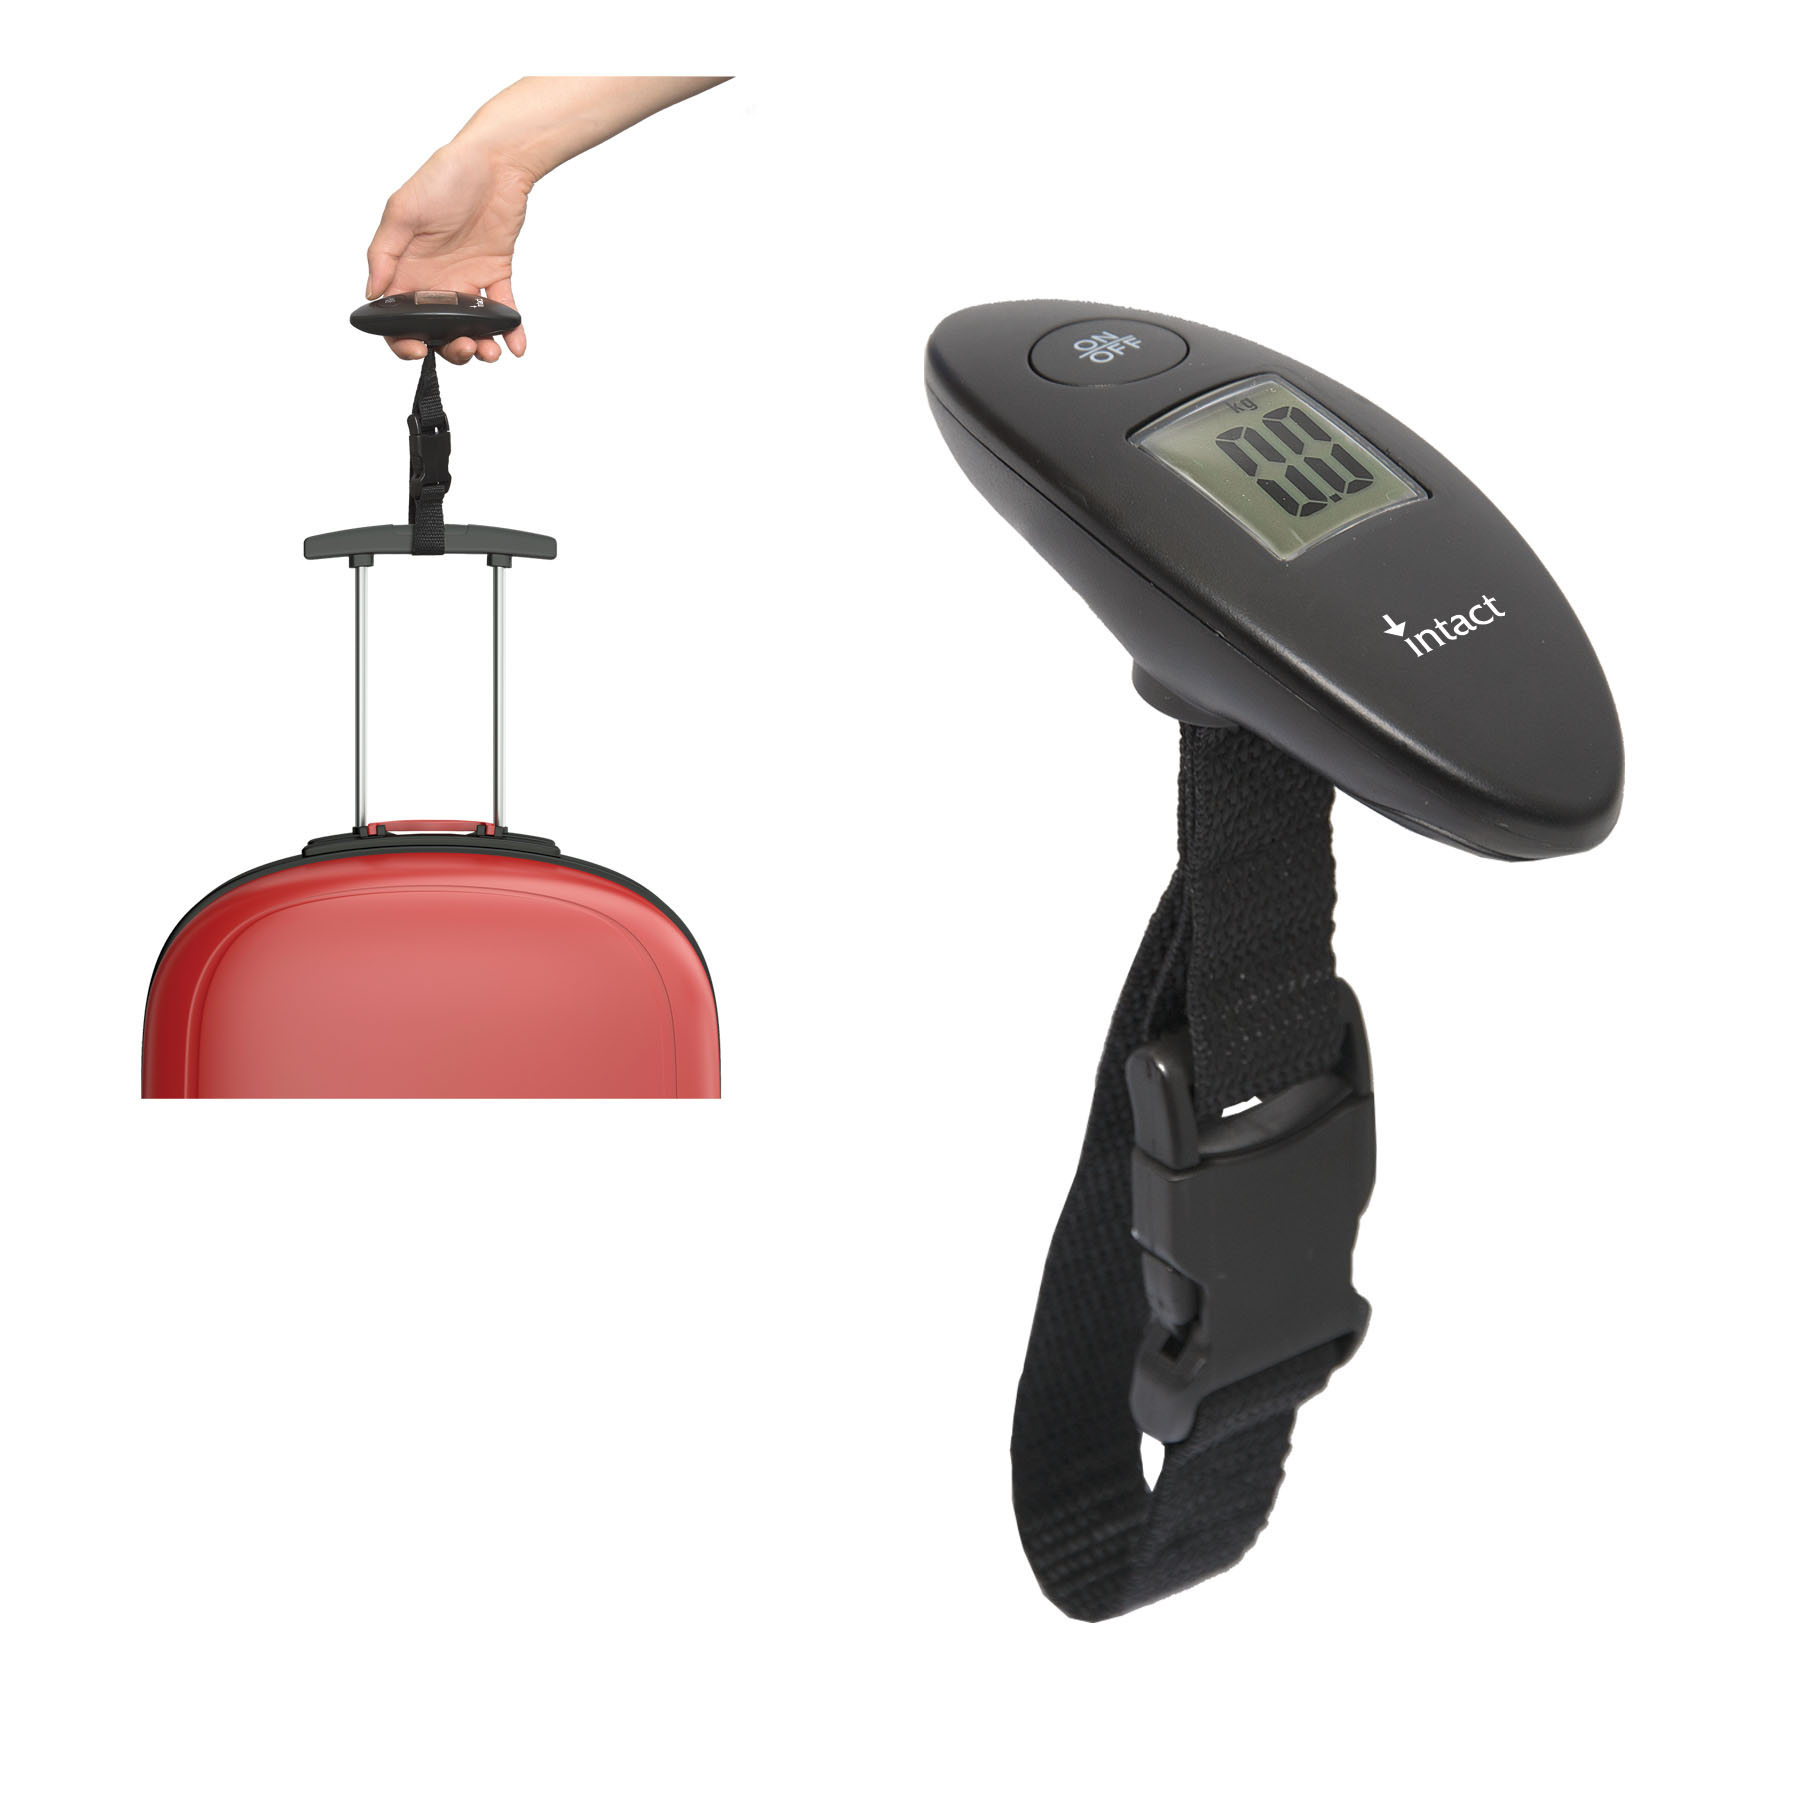 The B1 Travel Luggage Scale, TG8951, 1 Colour Imprint